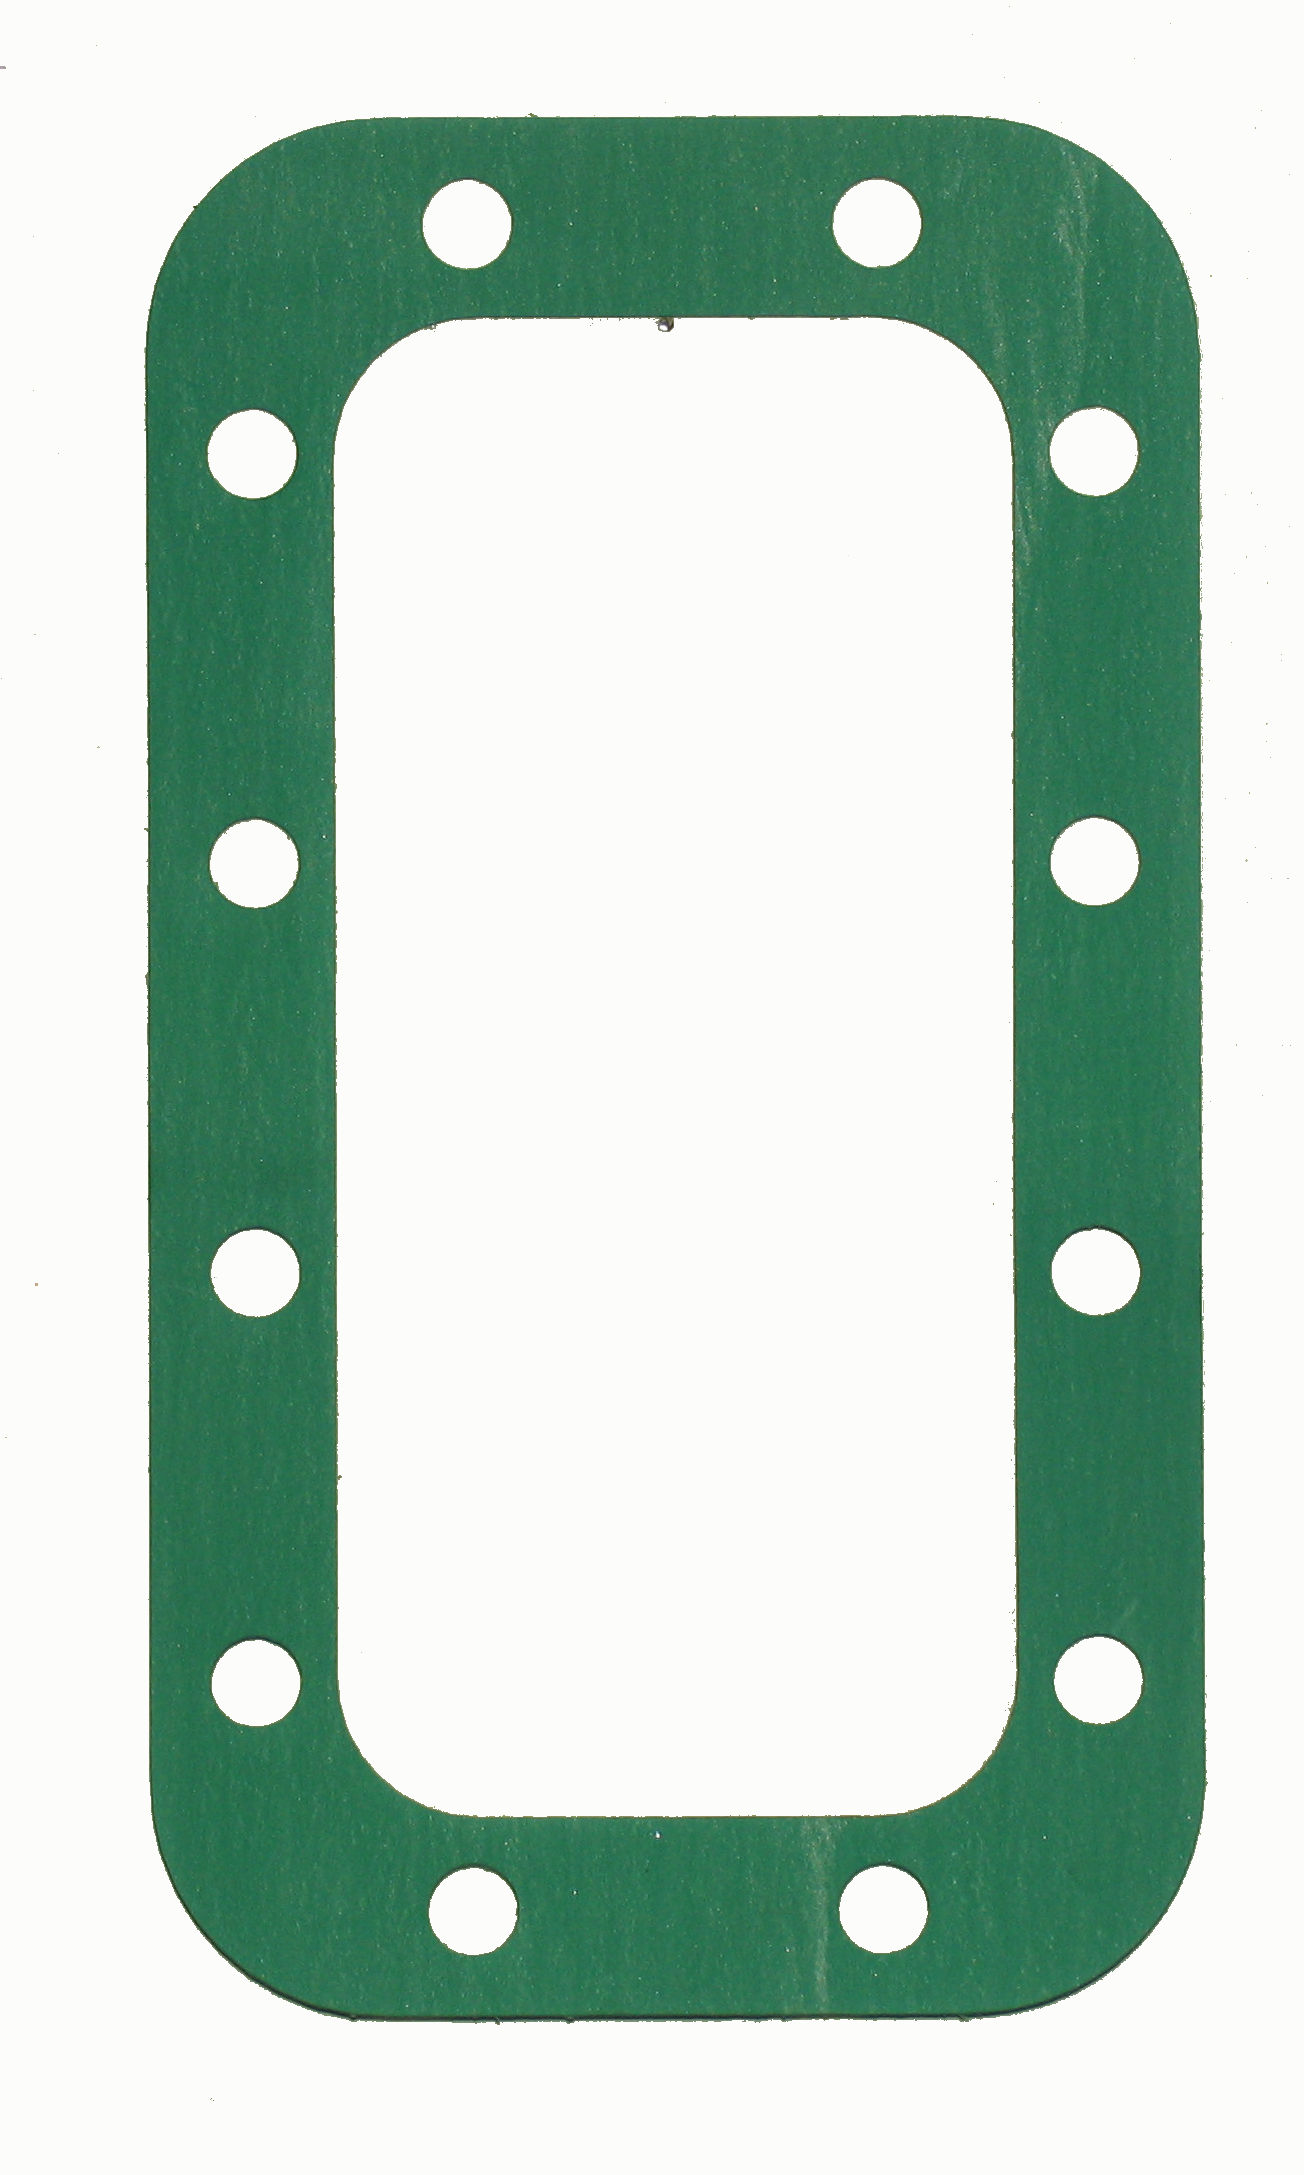 GKT-6345 Gasket; R/N GKT-955 (Made in the USA)